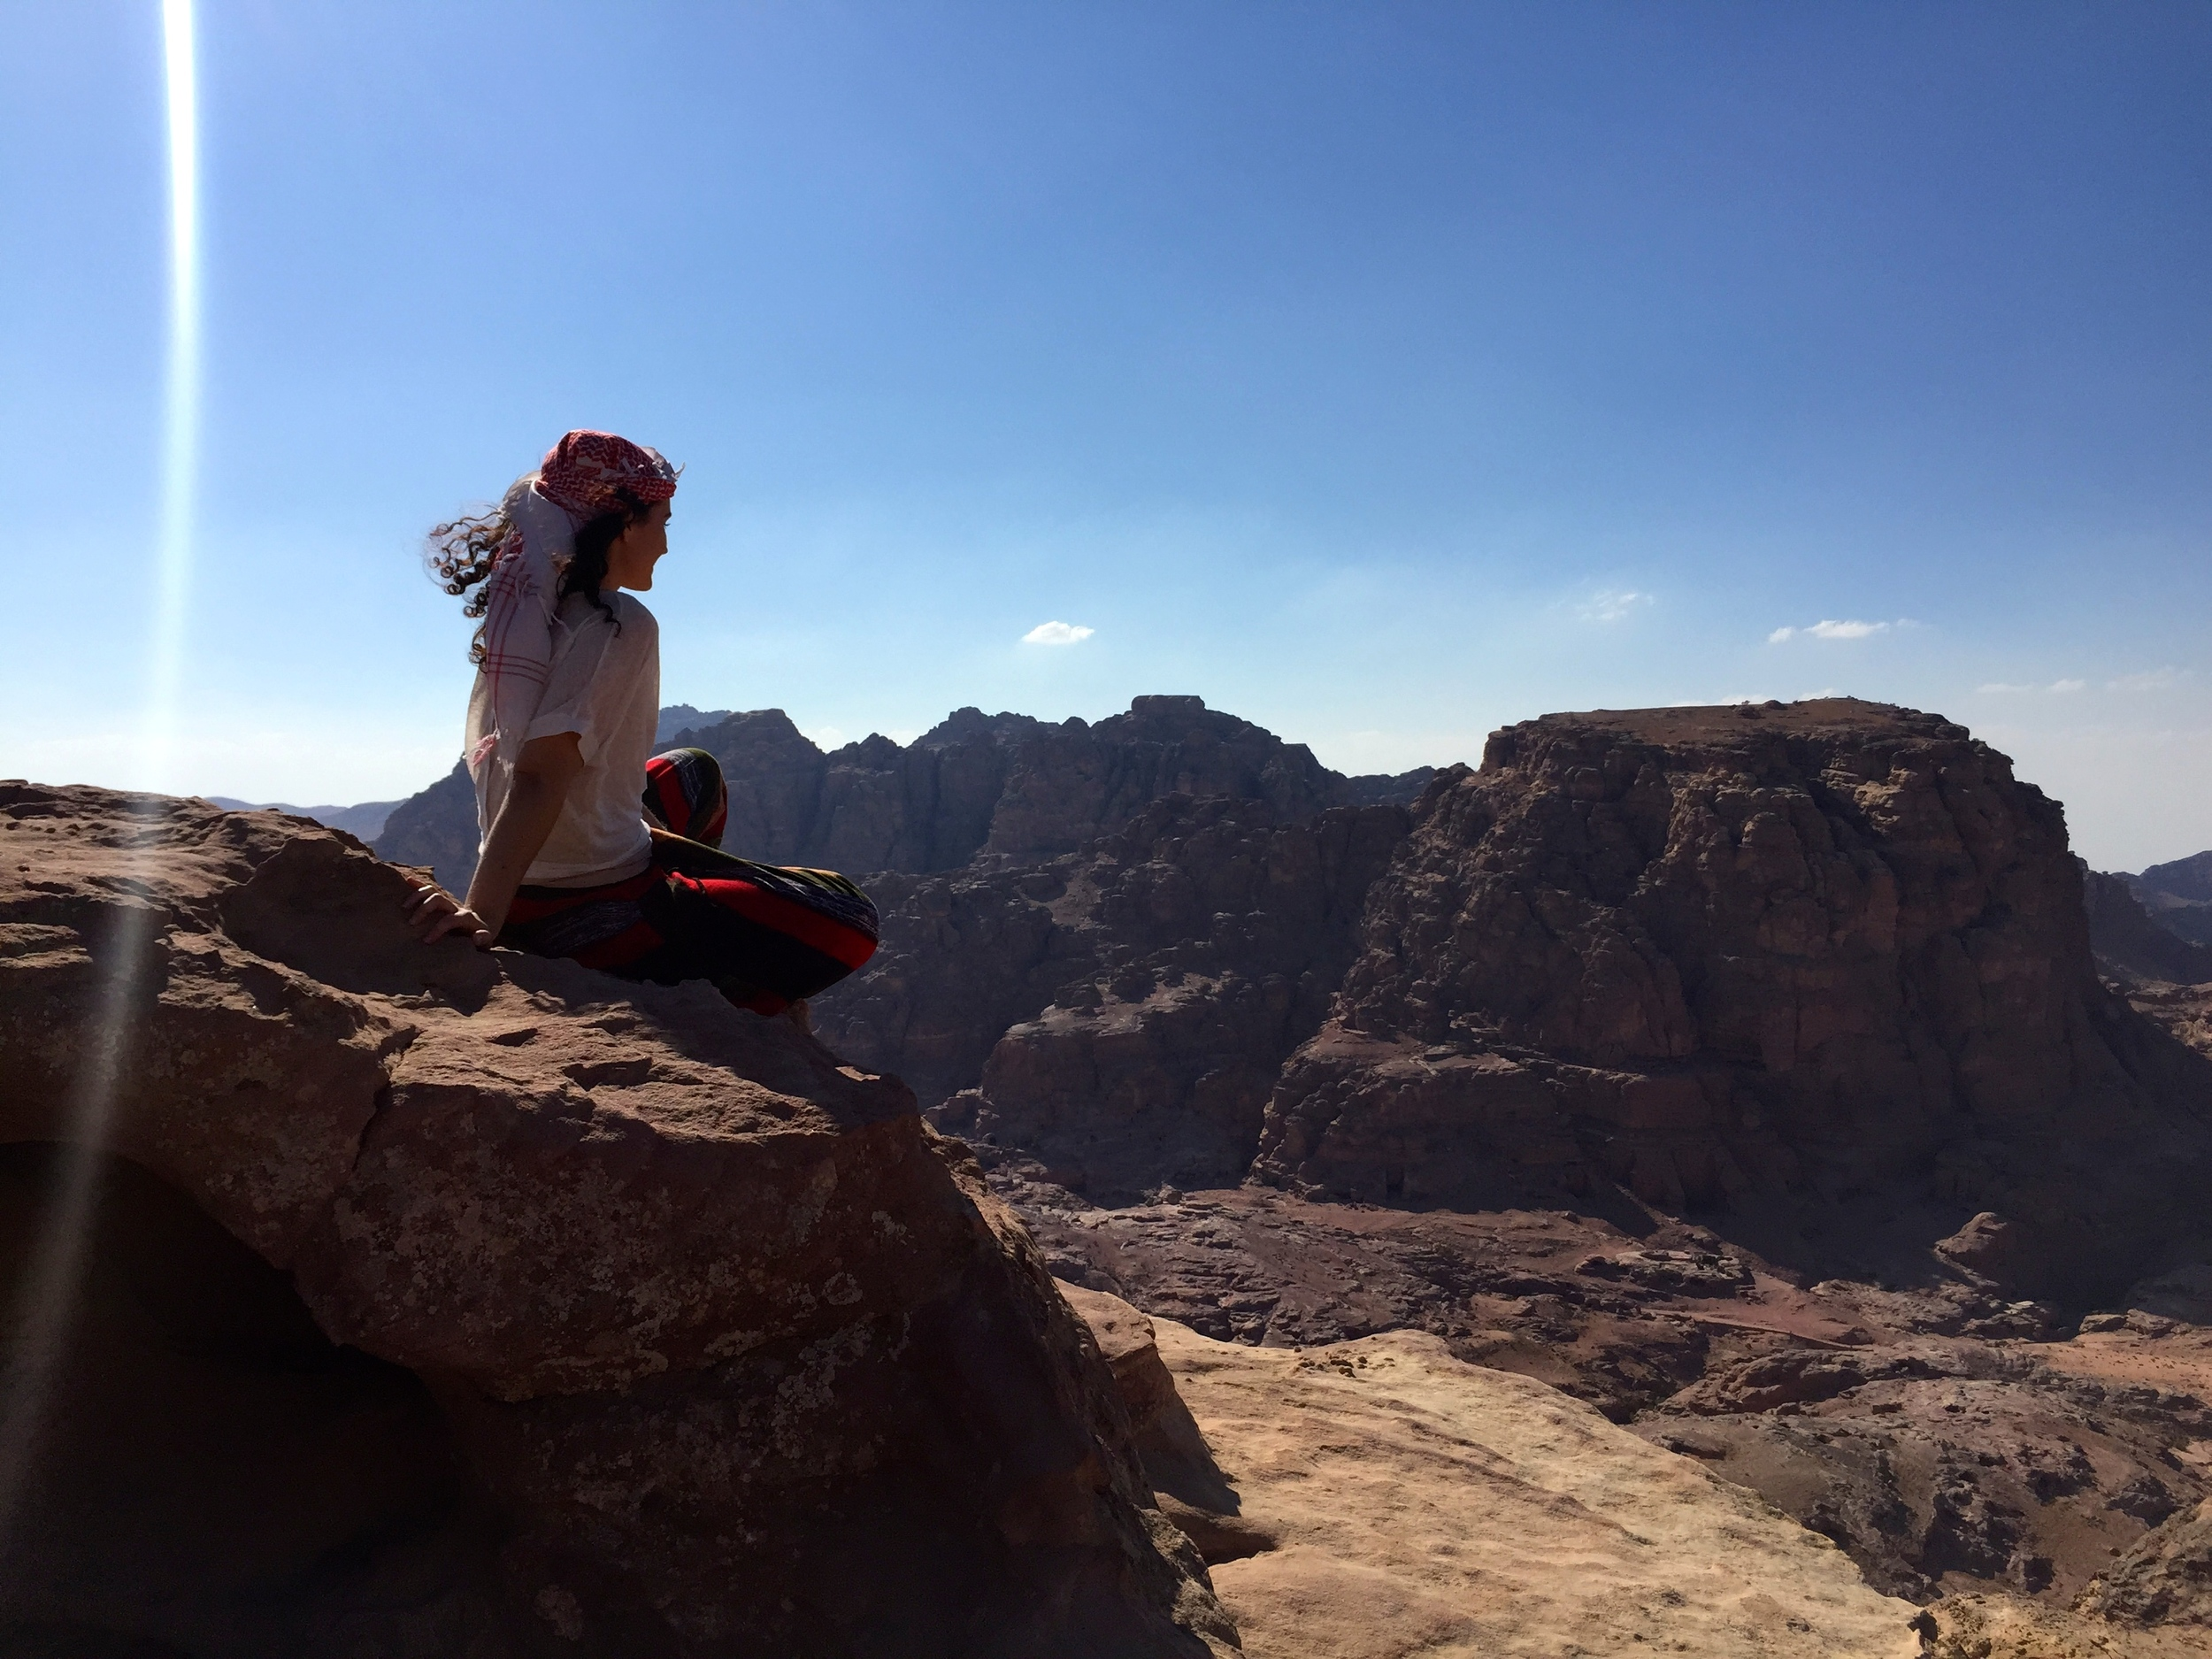 Just one of the many amazing views in Petra